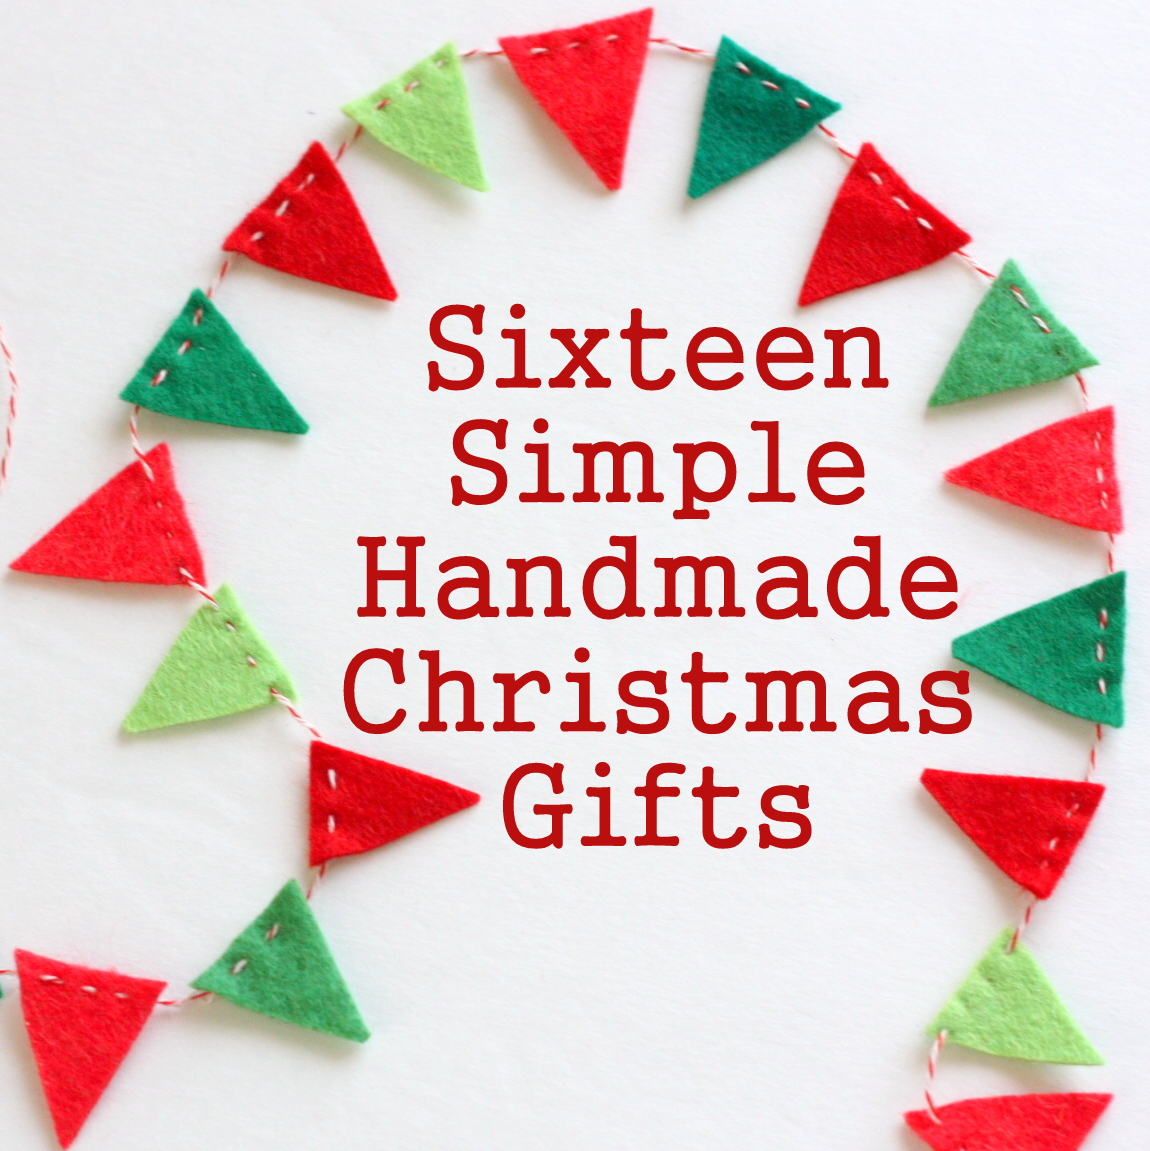 16 Simple Handmade Christmas Gift Tutorials Diary Of A Quilter A Quilt Blog